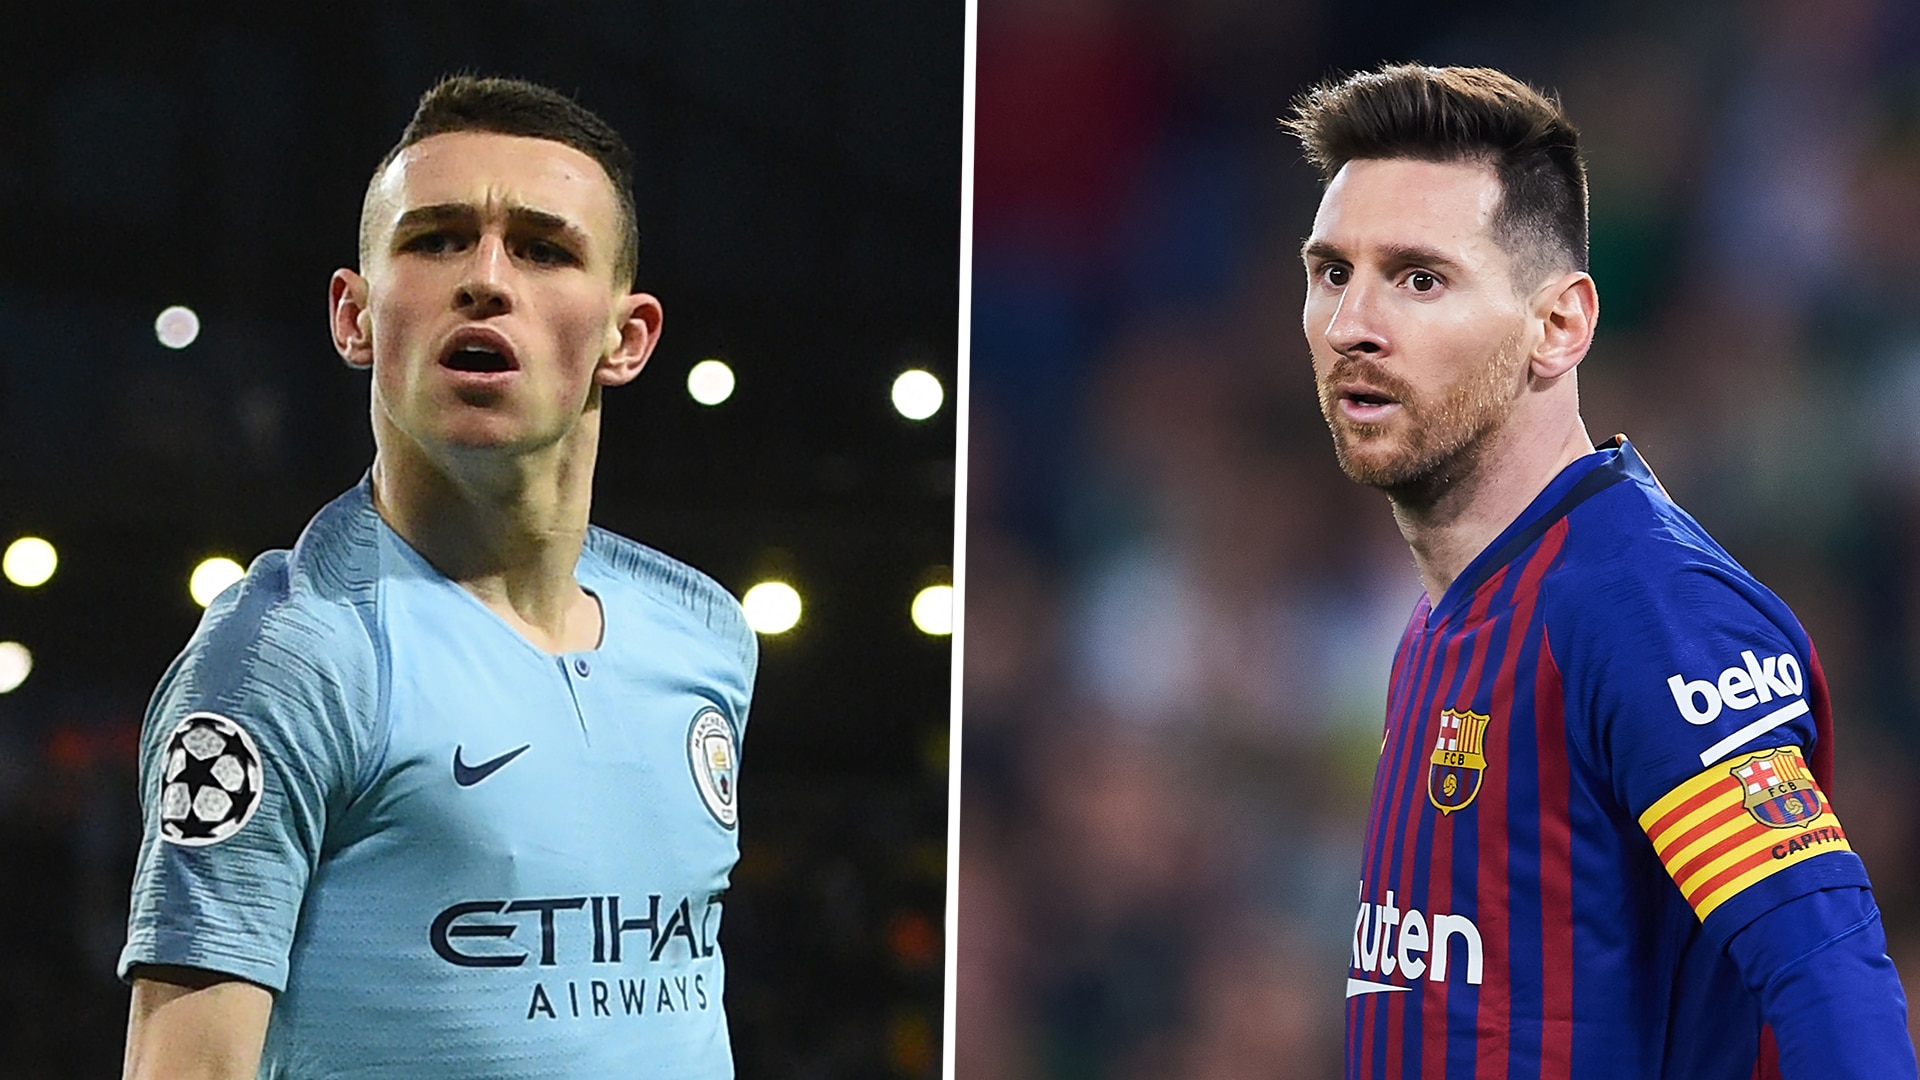 Foden Can Be Top Star Like Messi -Gullit